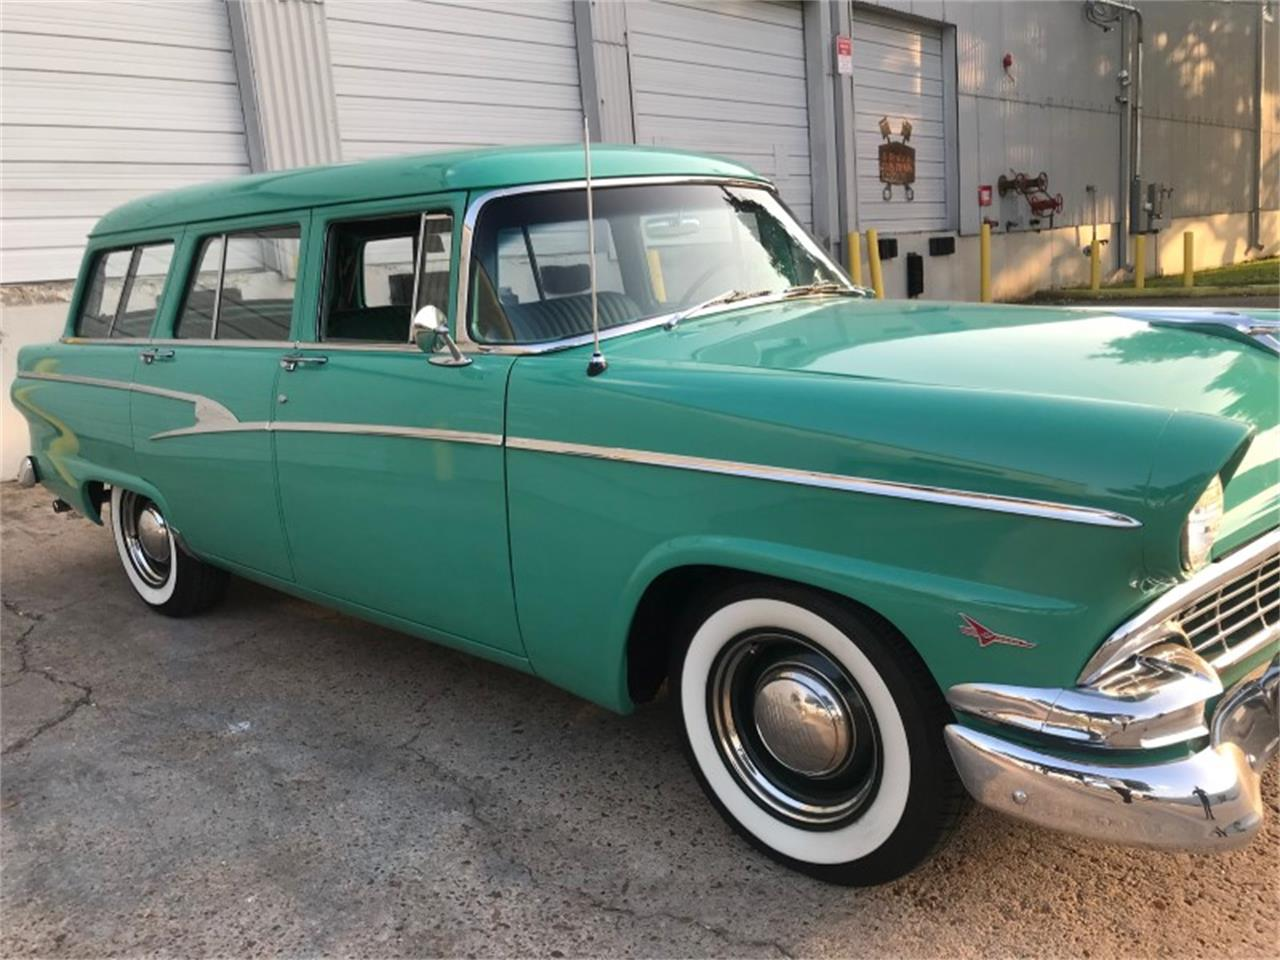 Large Picture of Classic 1956 Ford Country Sedan - $29,500.00 - NN69